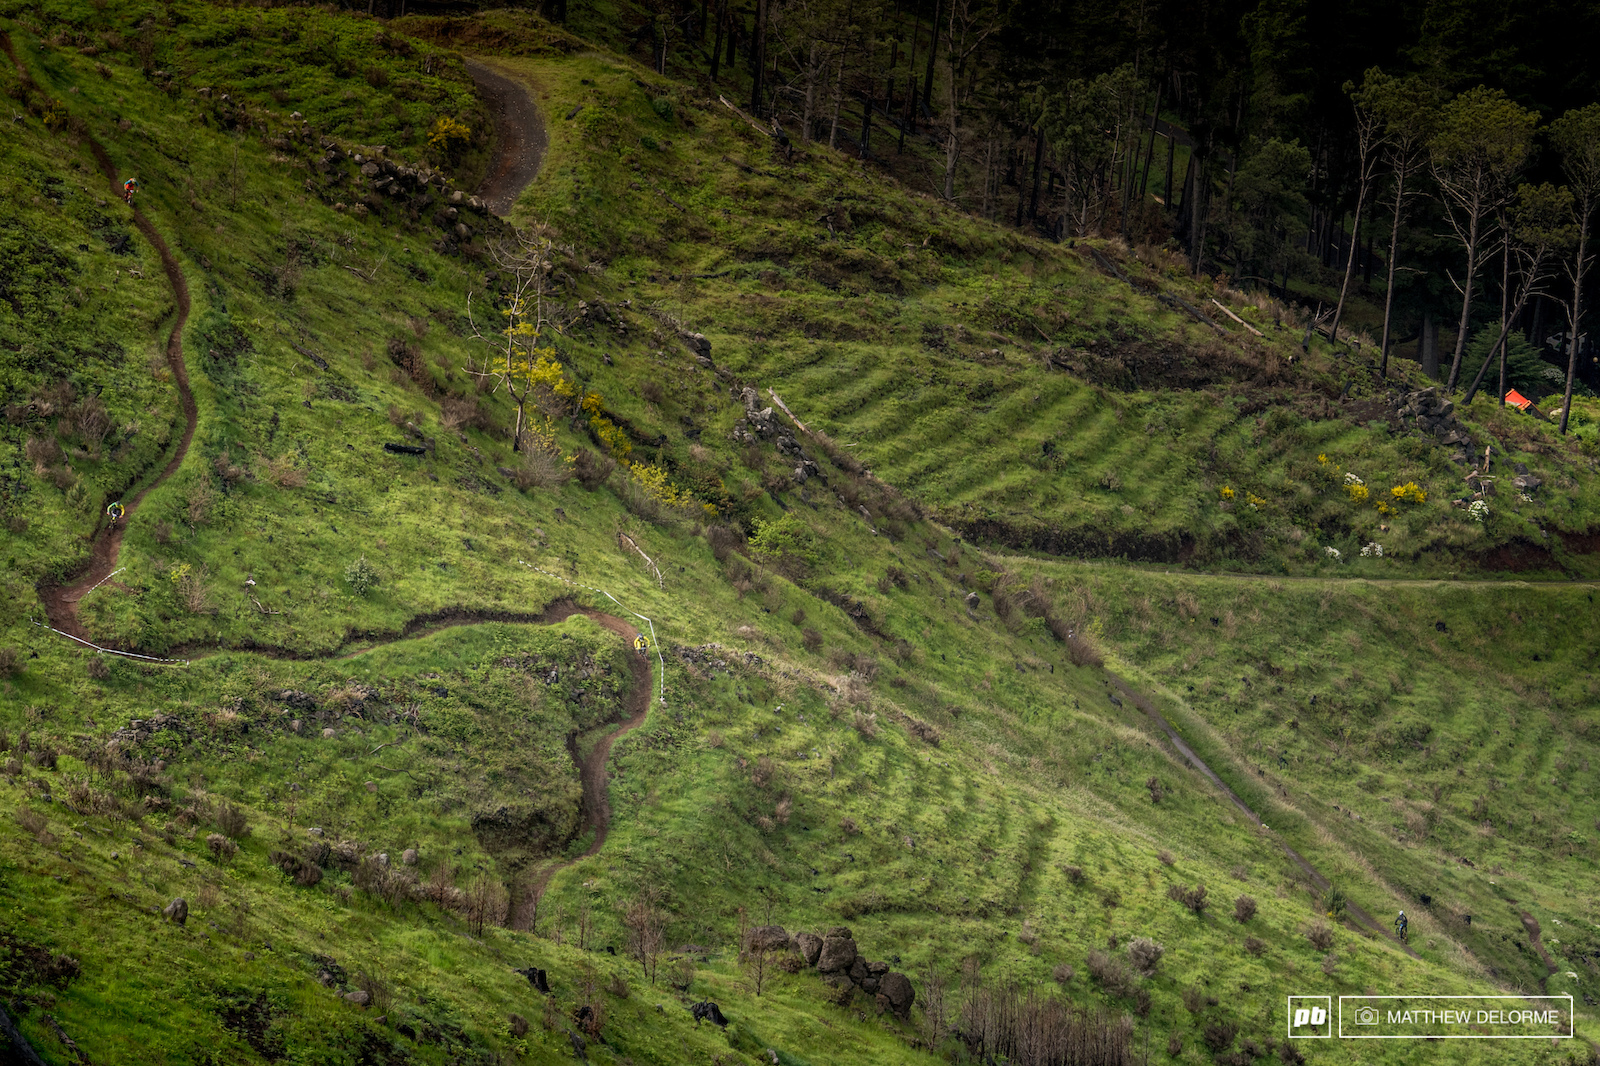 The riders take to practice on some lovely single track.